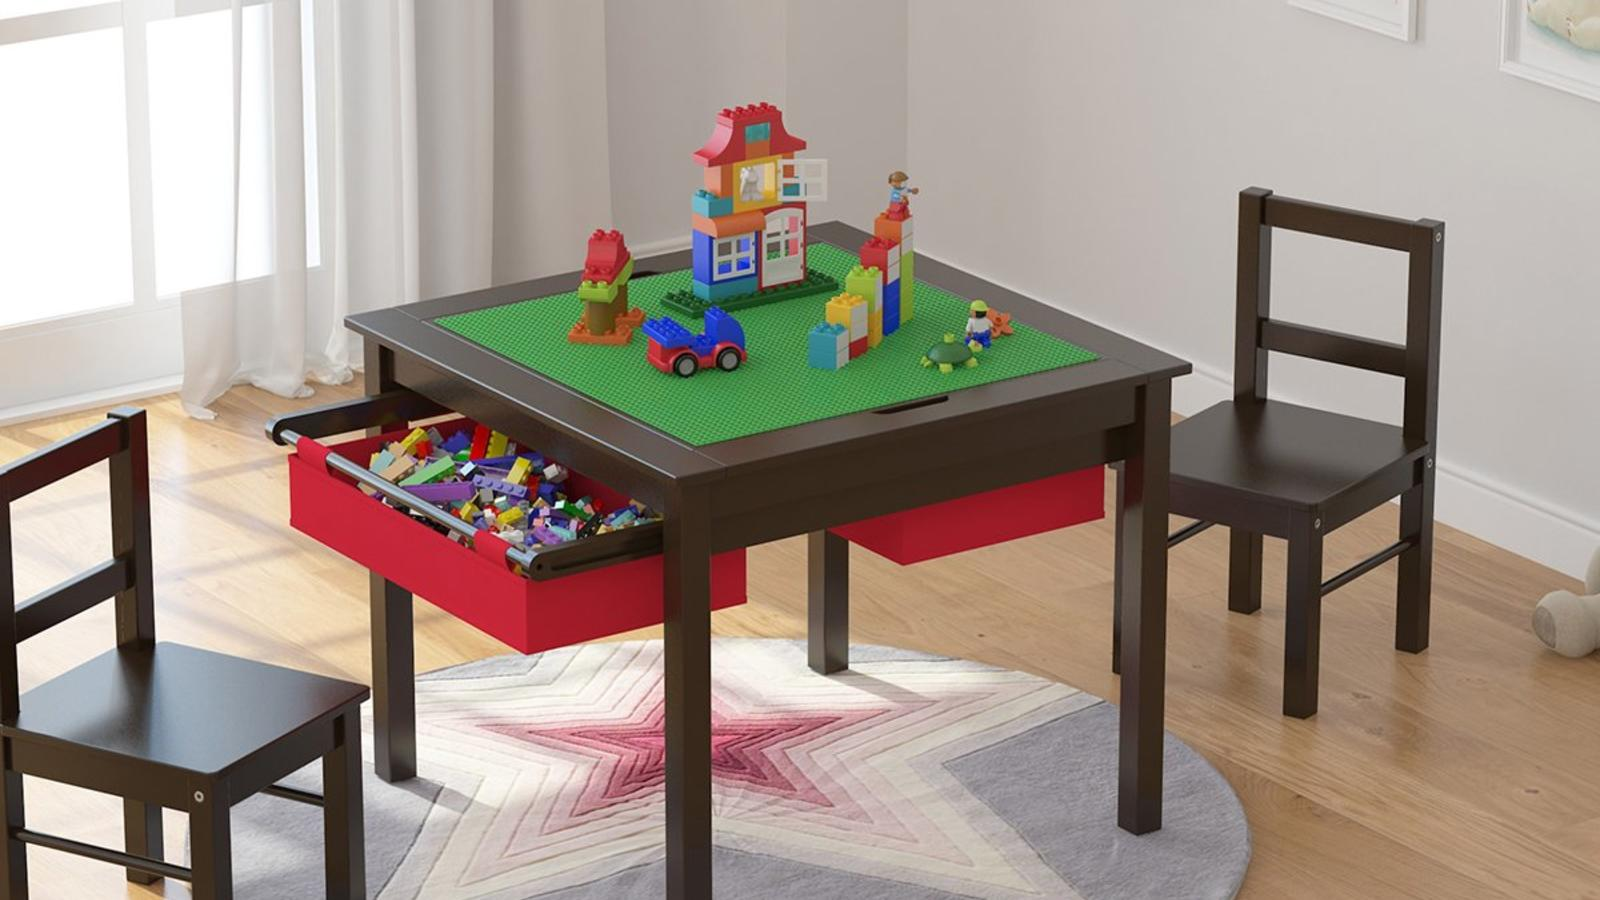 Utex Lego Table With Chairs, Lego Table With Storage Triangle And 3 Chairs